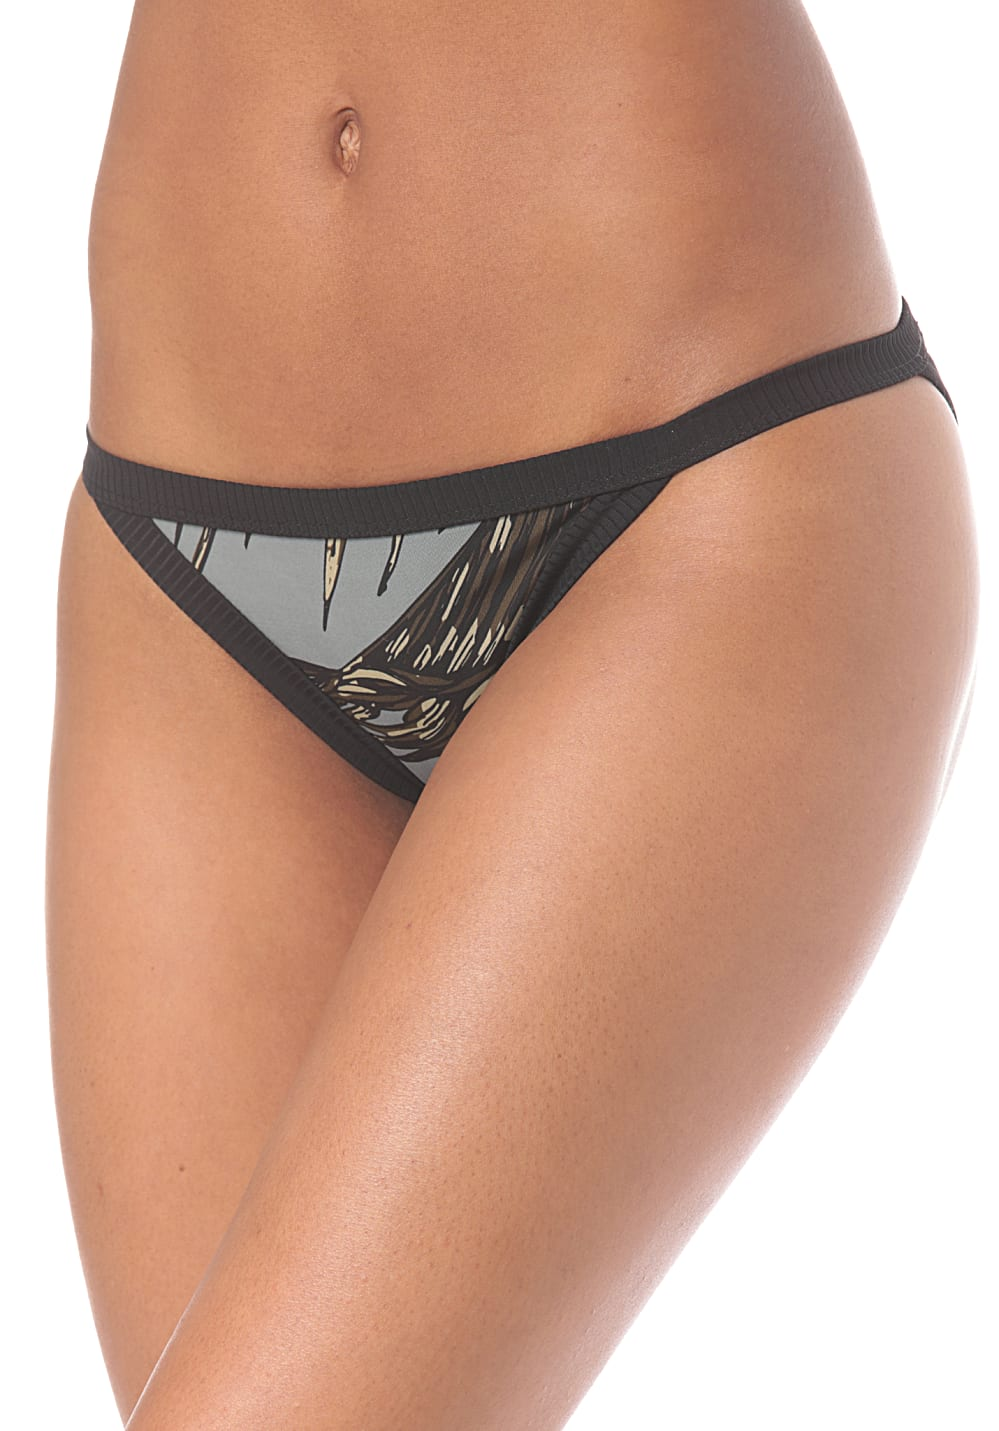 Bademode - Hurley Quick Dry Koko Surf Bottom Bikini Hose für Damen Grau  - Onlineshop Planet Sports